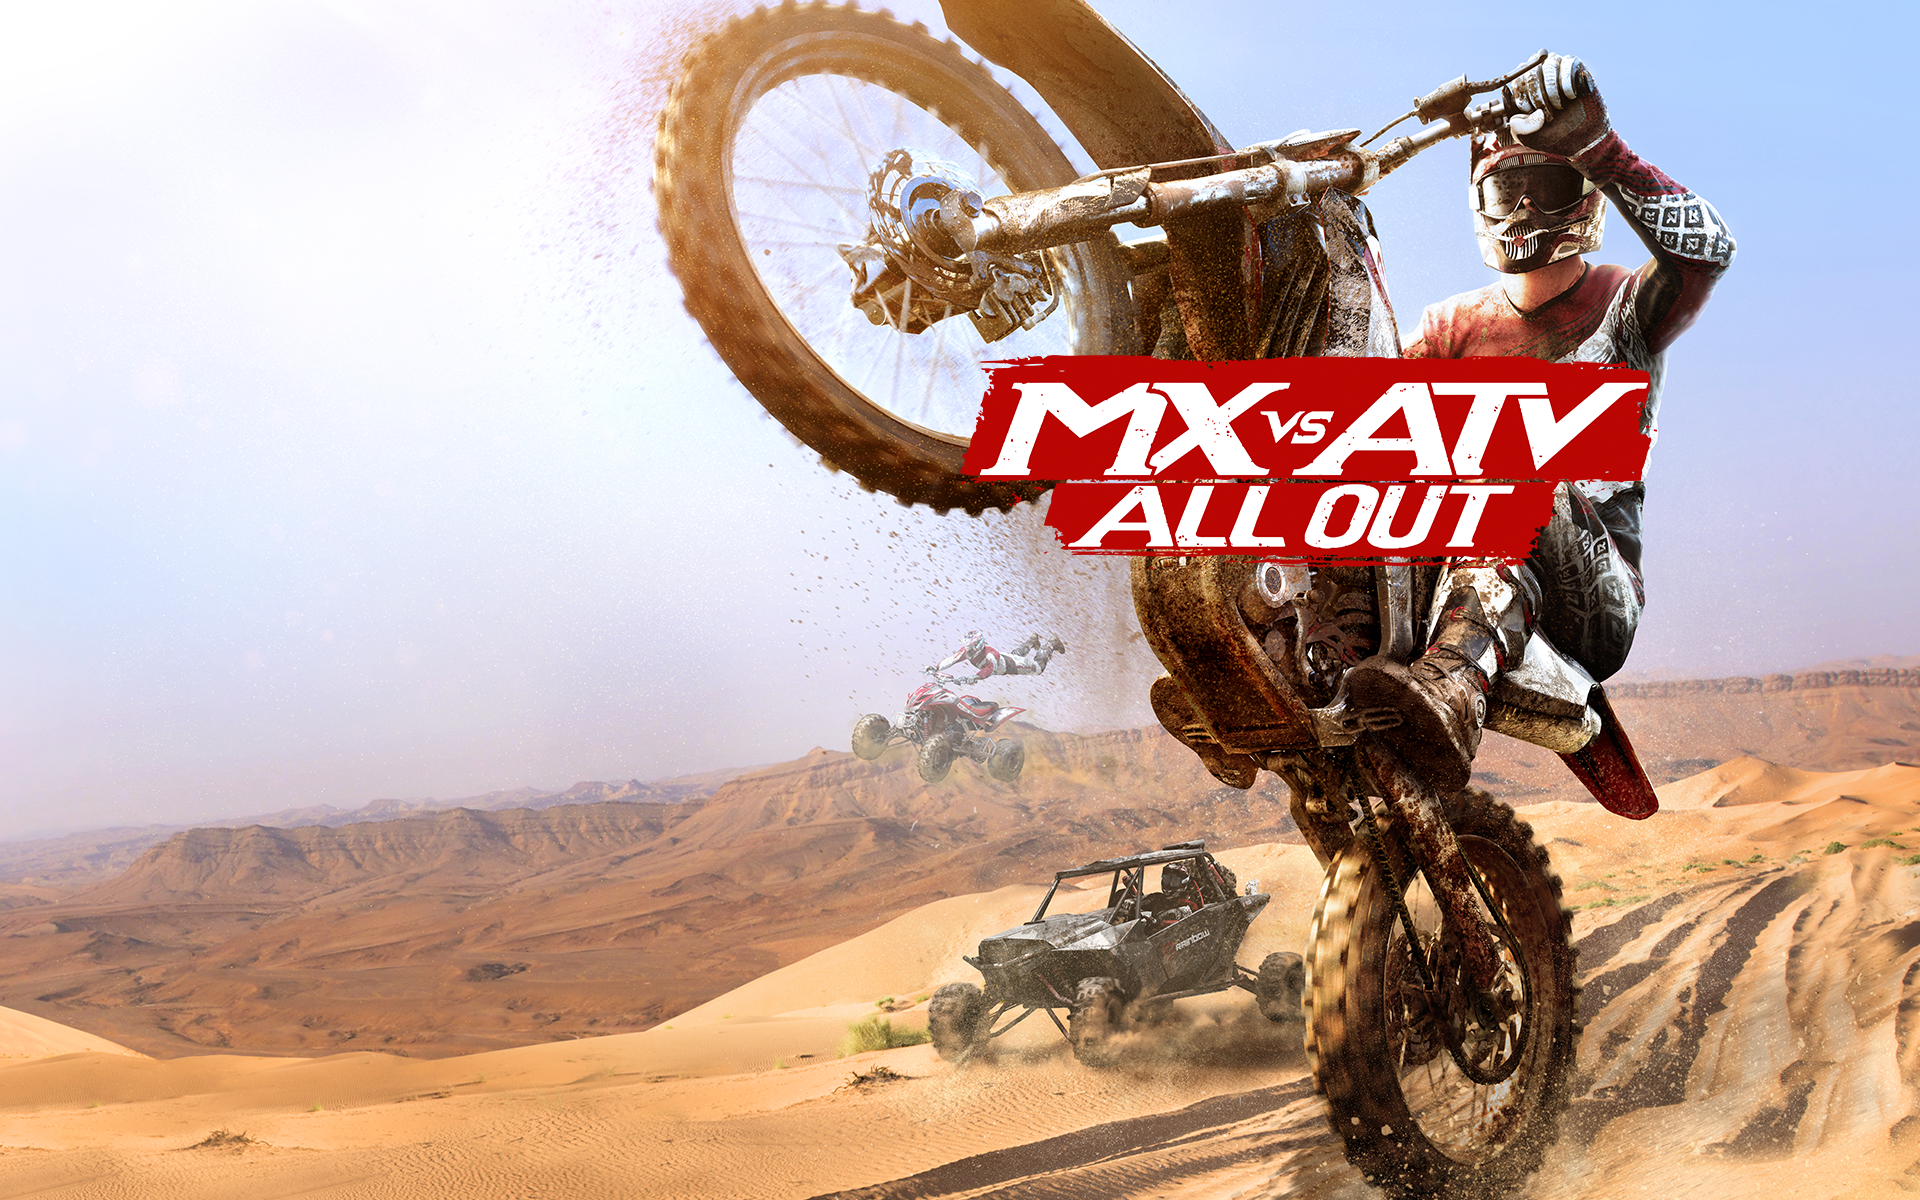 MX vs ATV All Out on Steam